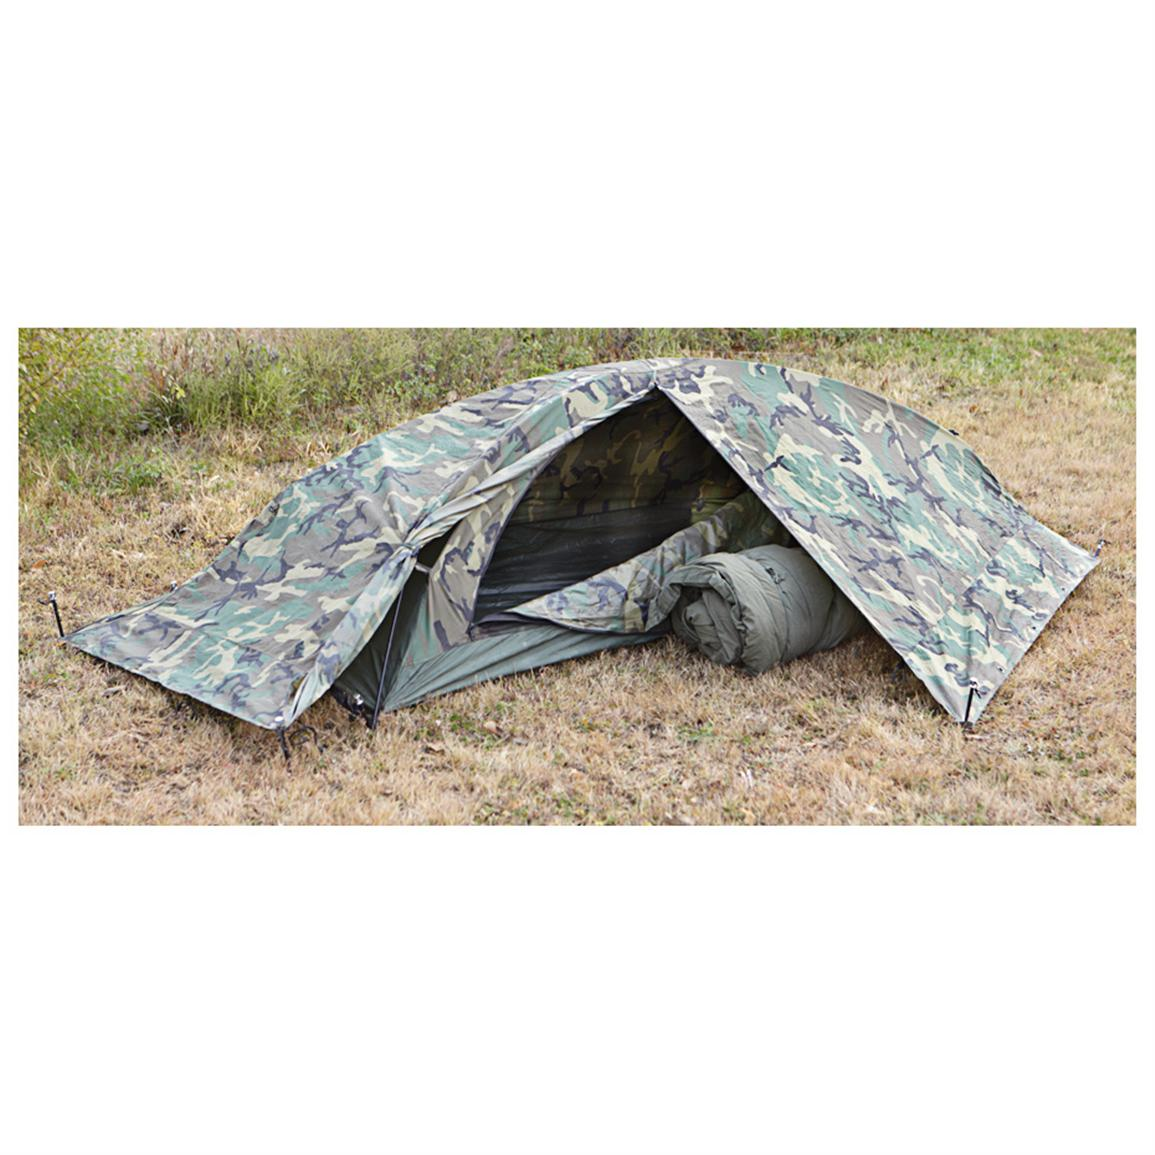 Rainfly protection with 2 doors  sc 1 st  Sportsmanu0027s Guide : 1 2 person tent - memphite.com